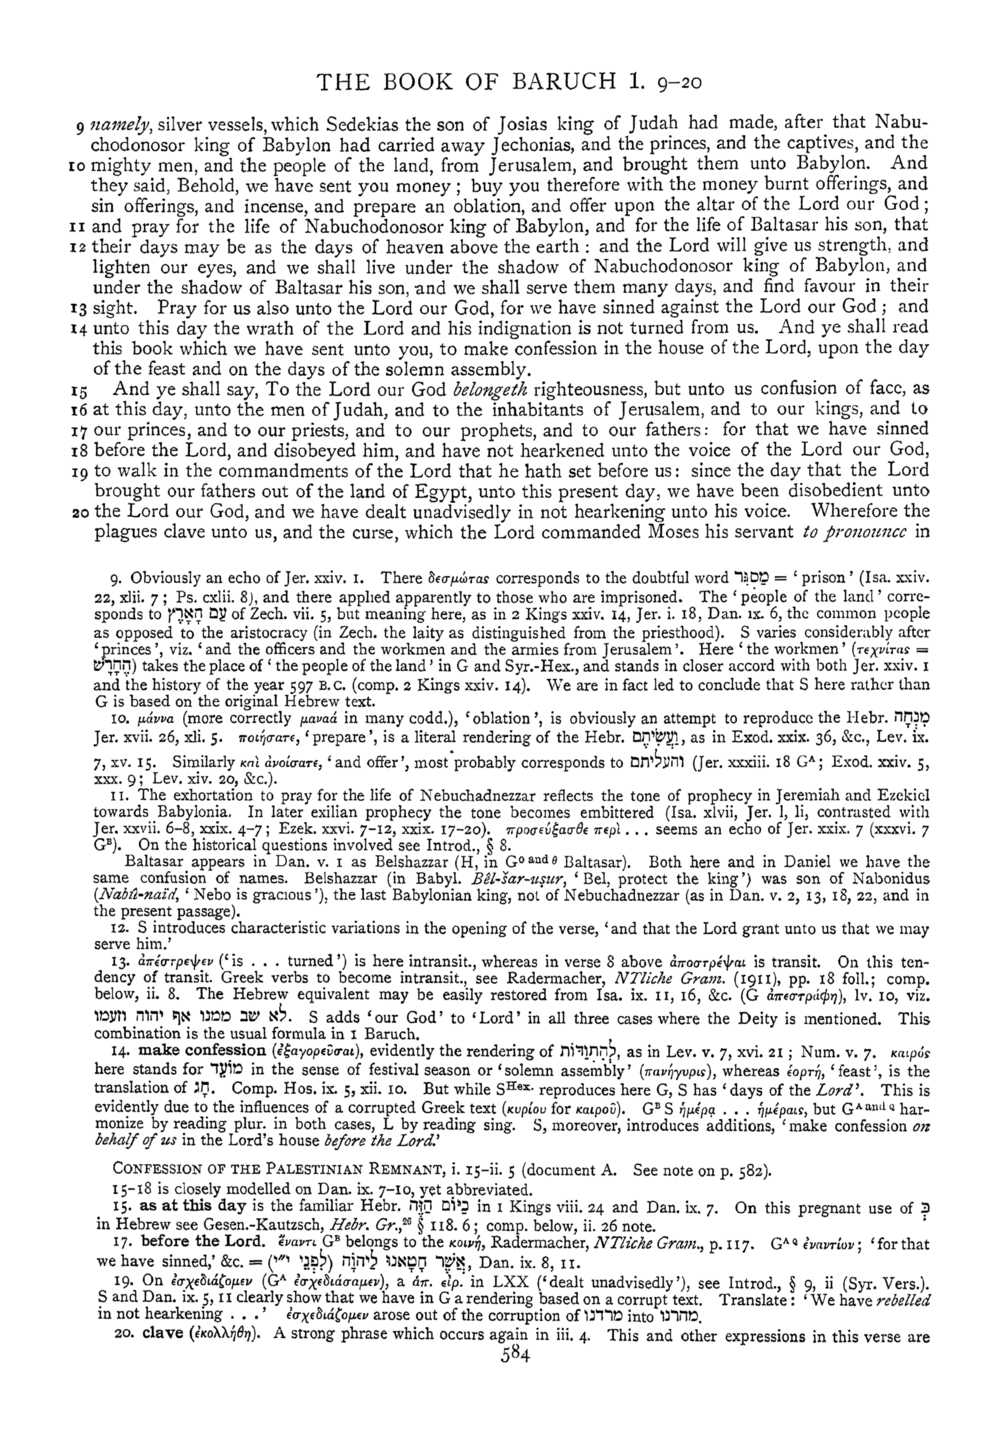 Image of page 584